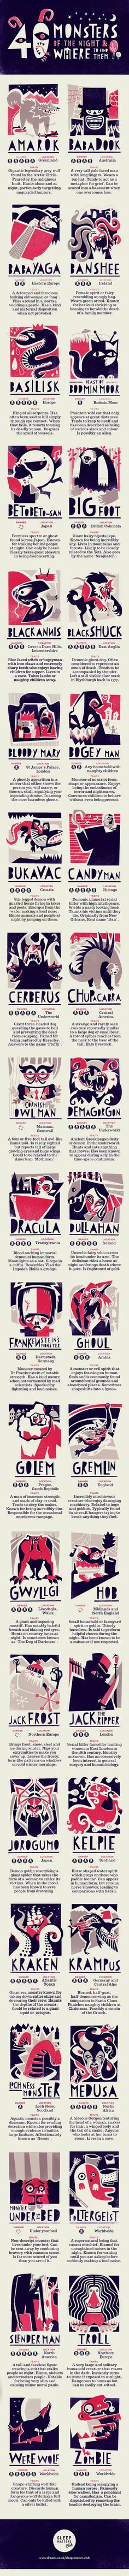 Monster Guide: A to Z (31 Days of Halloween 08/31) - Album on Imgur